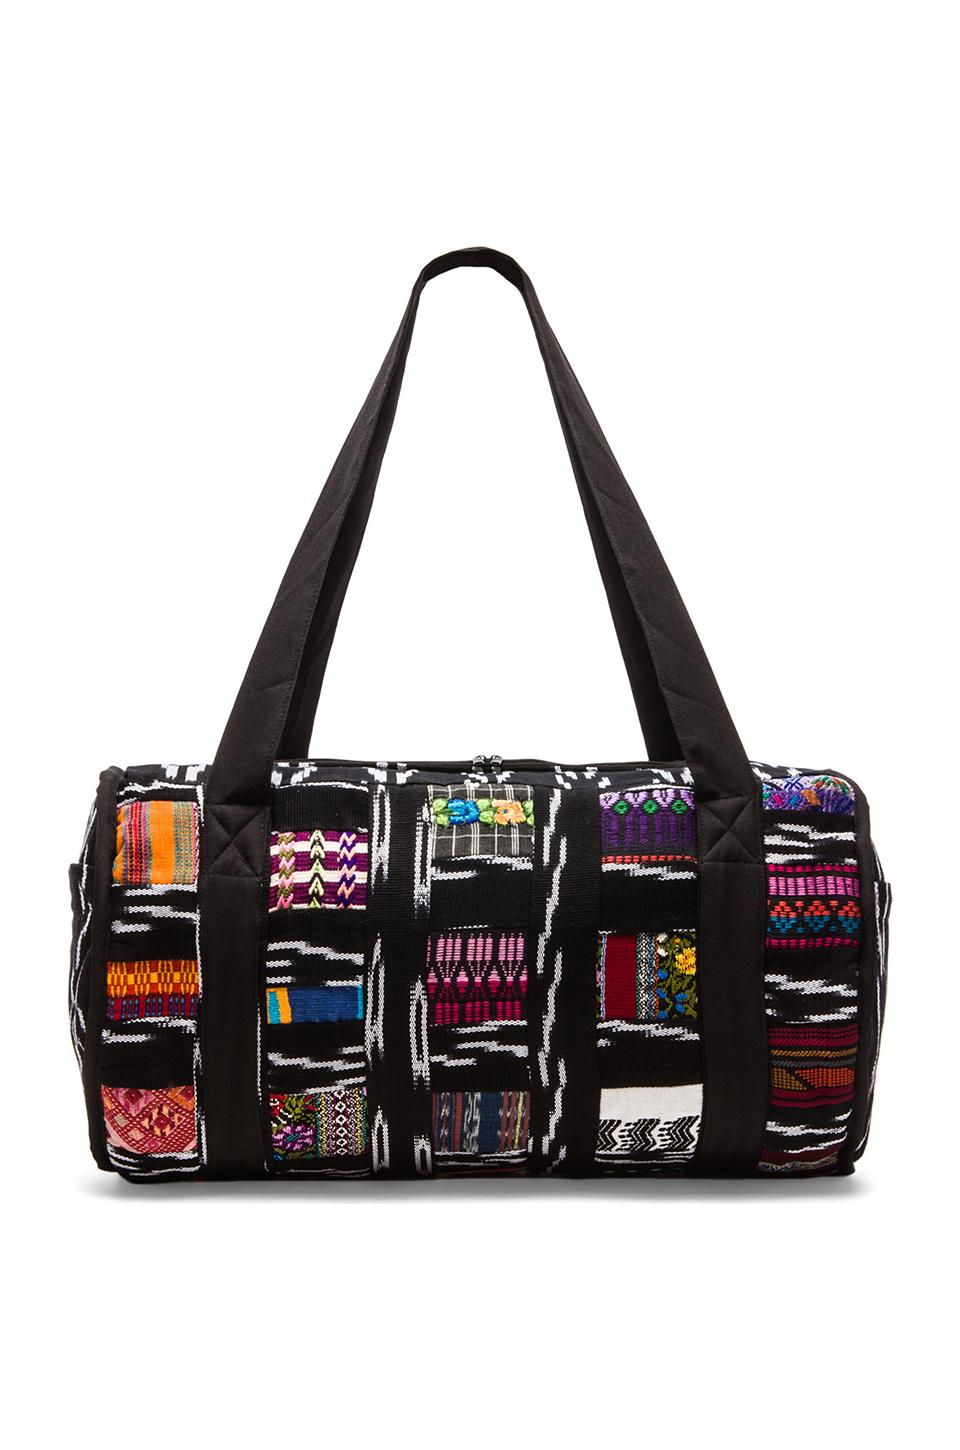 STELA 9 Patchwork Duffle in Black